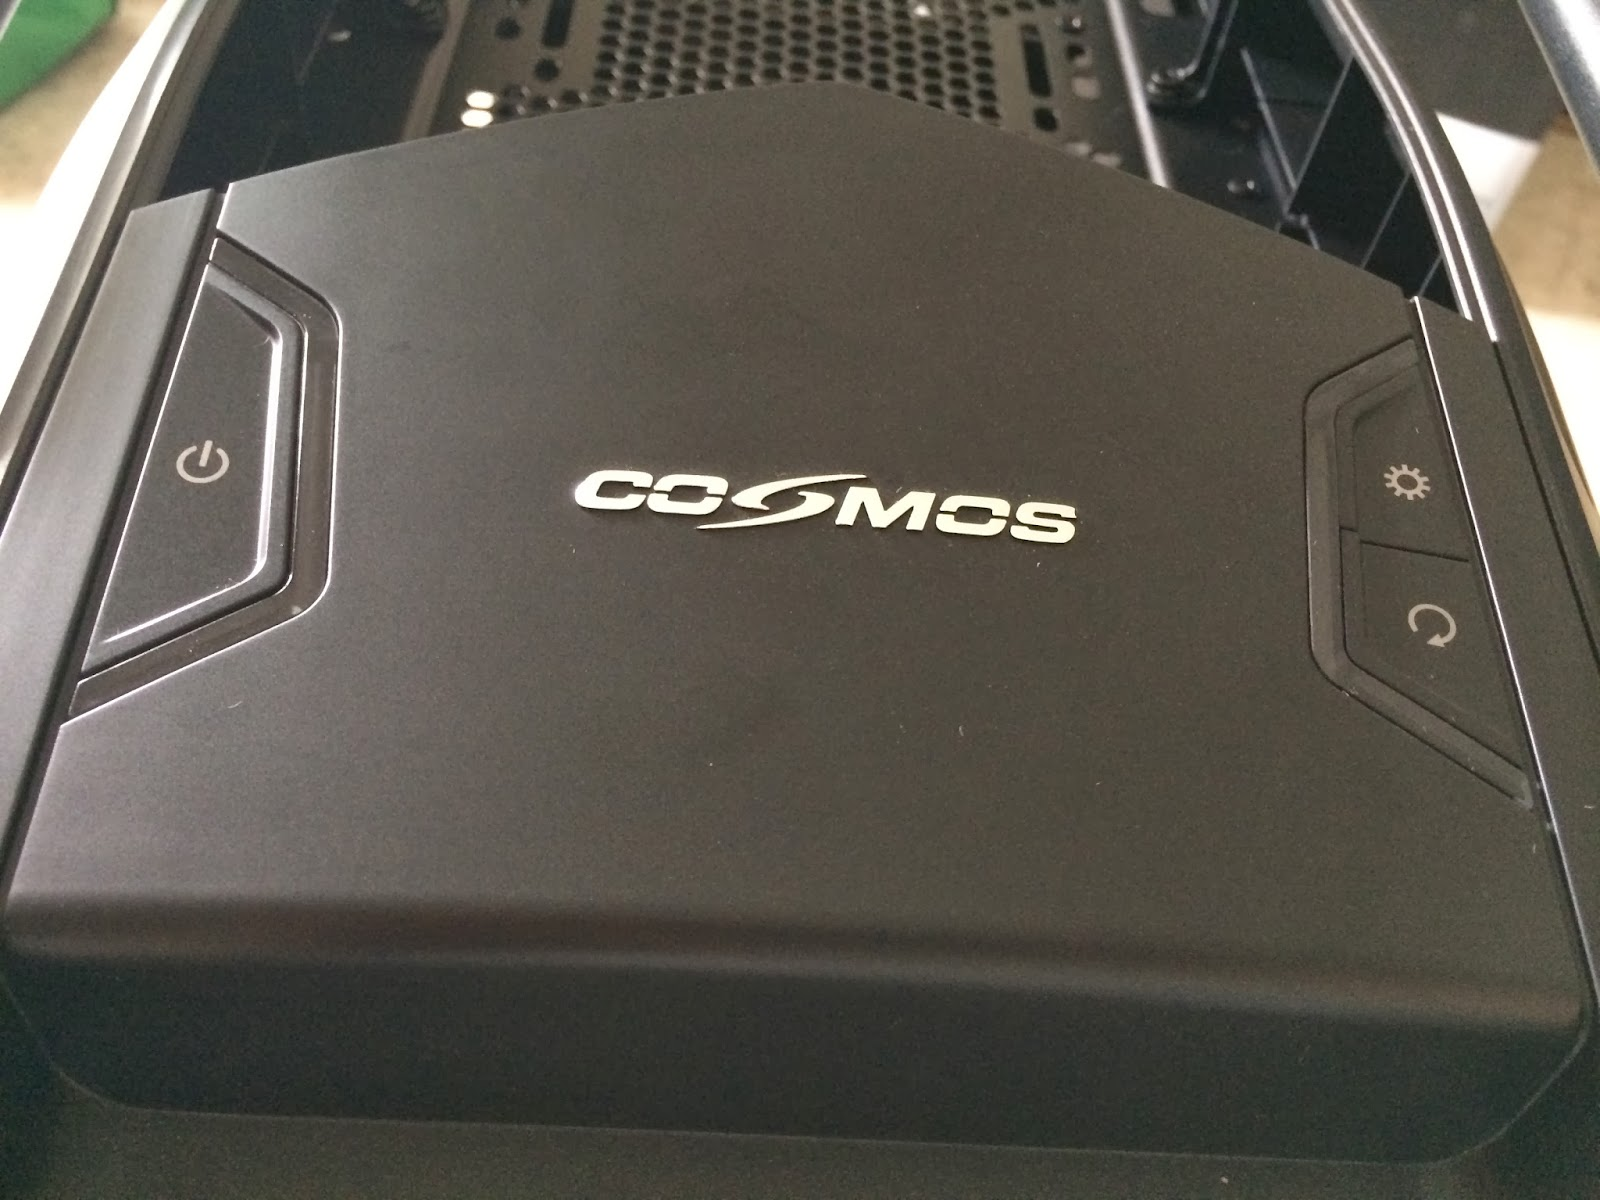 Unboxed & Reviewed: Cooler Master Cosmos SE 107